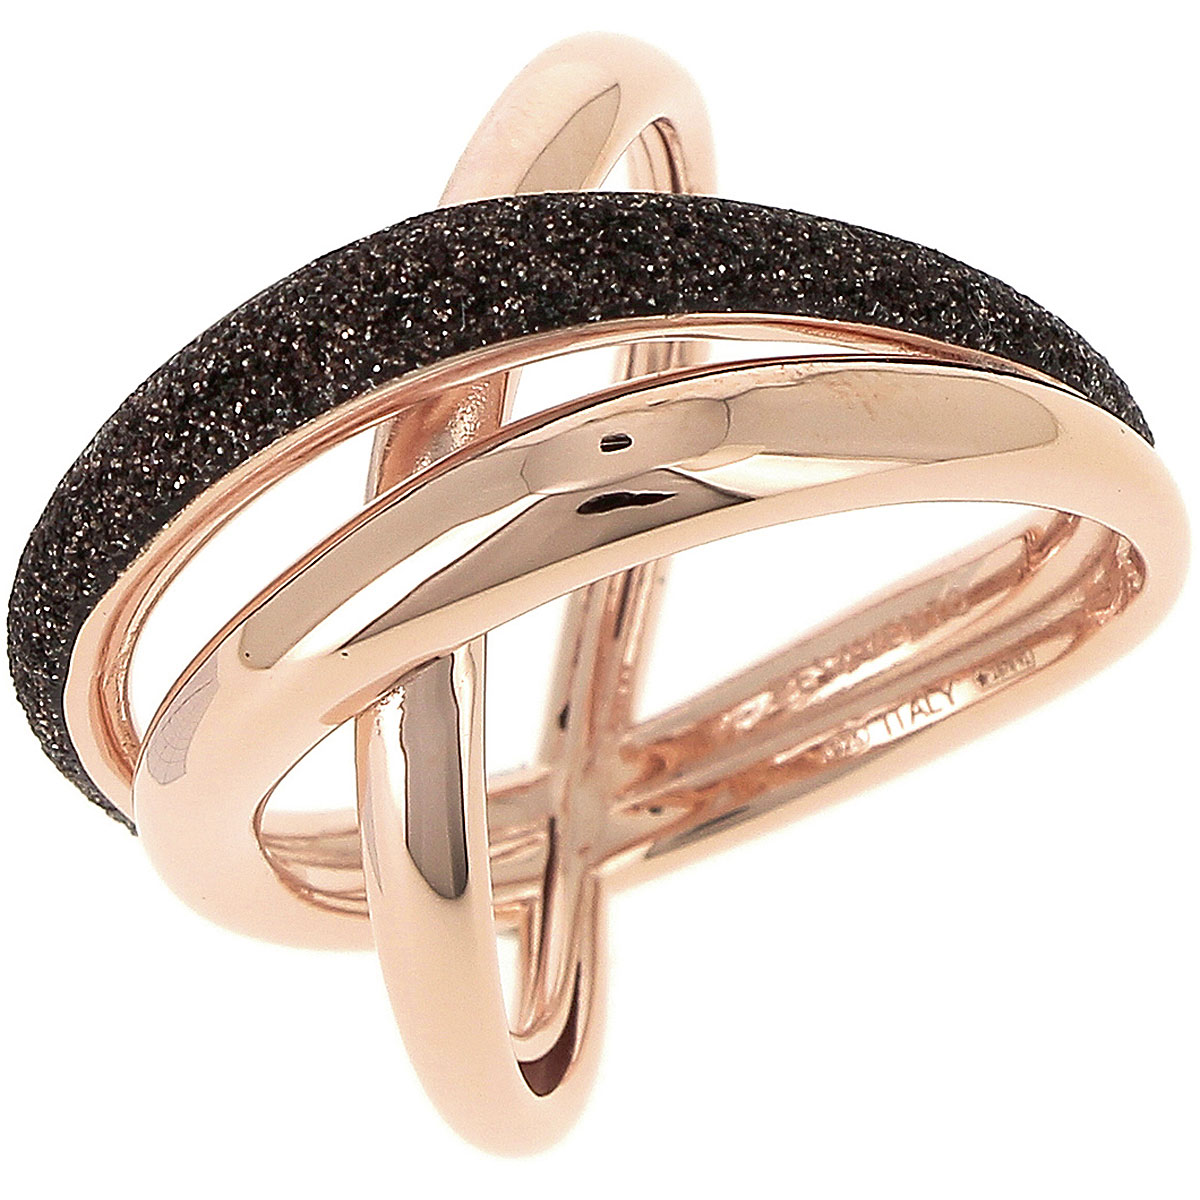 Pesavento Ring for Women, Gold Pink, Silver 925, 2019